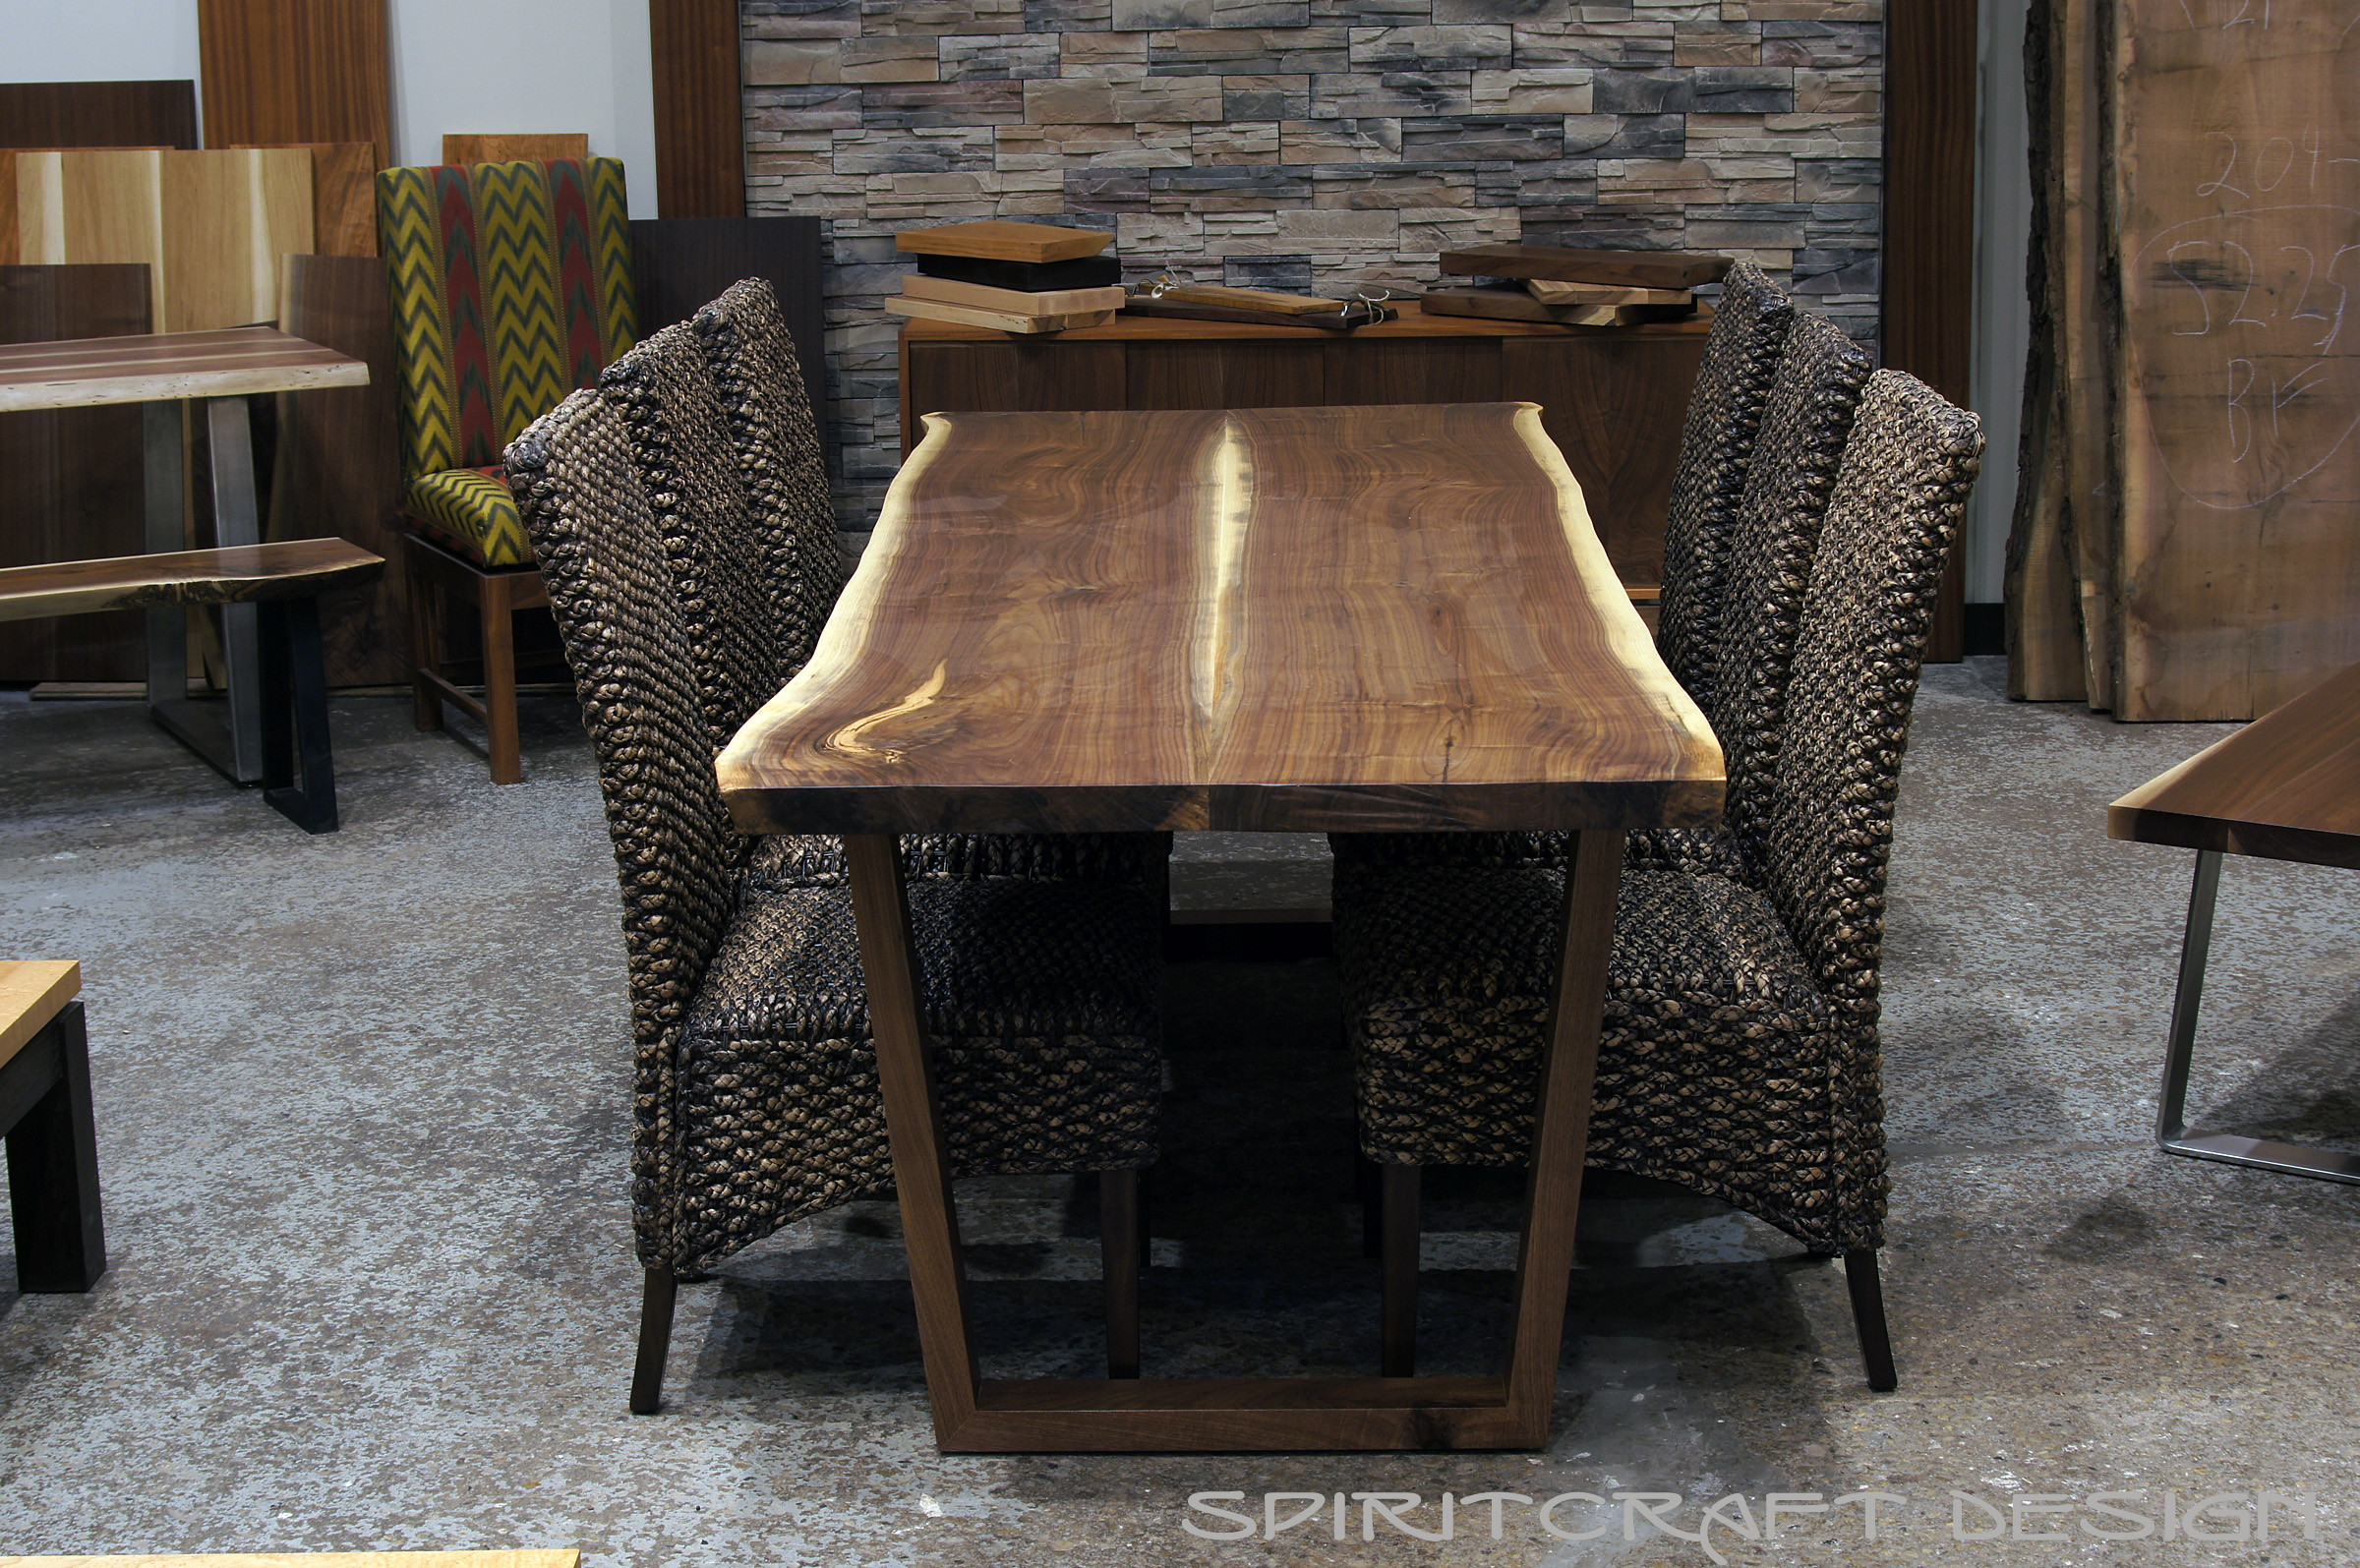 Contemporary furniture stores in chicago il -  Chicago Area Furniture Store Our Hardwood Furnitire Bookmathed Live Edge Slab Dining Table With Perfectly Crafted Walnut Hardwood Trapezoid